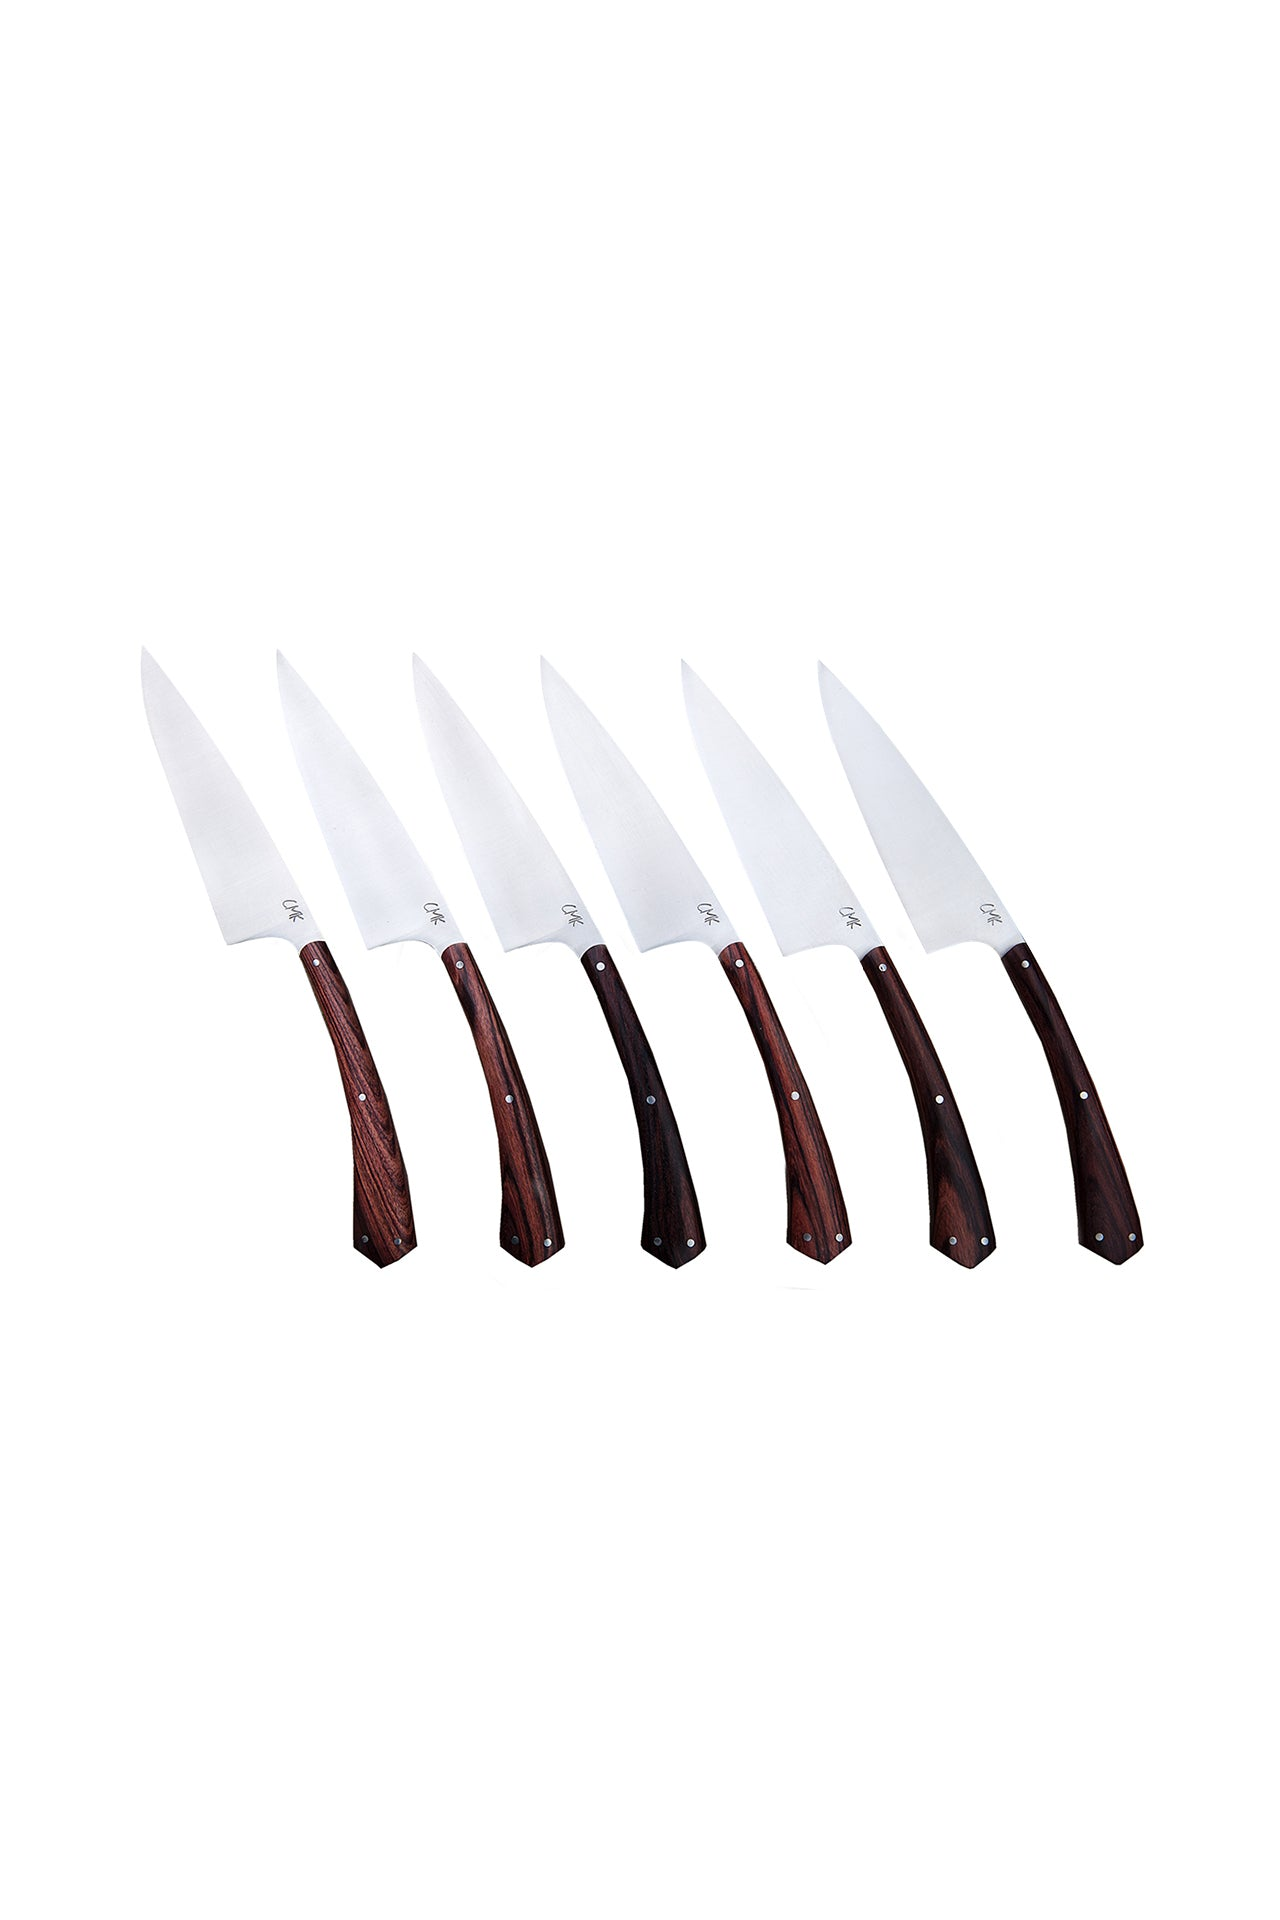 Steak Knife Set of 8